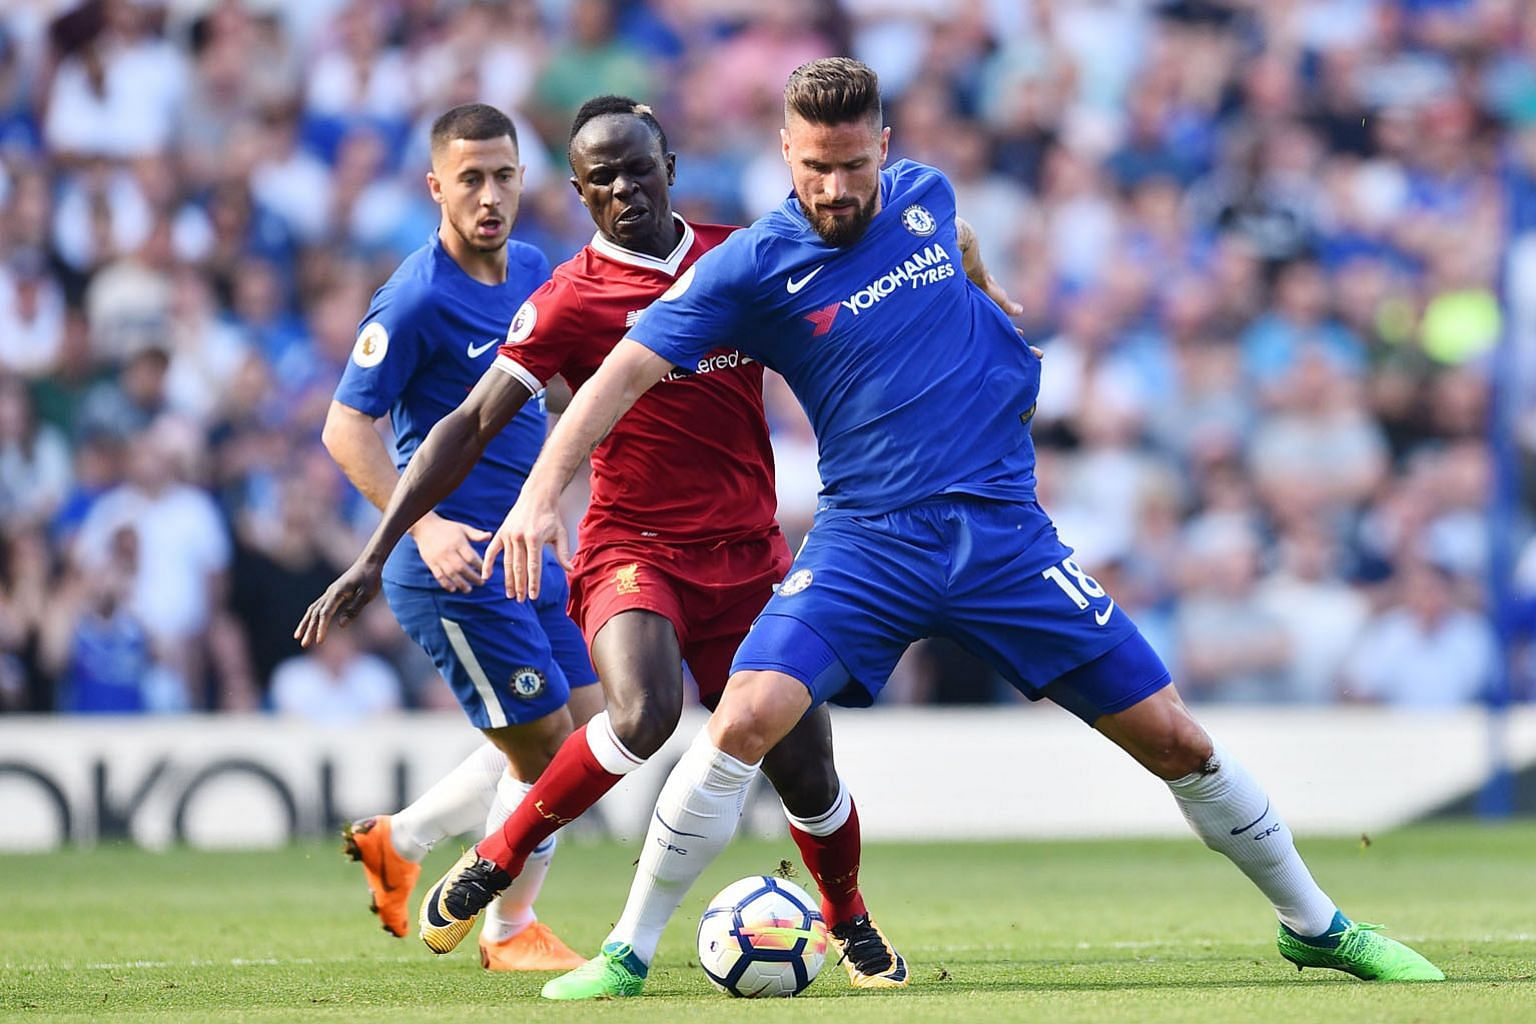 Chelsea striker Olivier Giroud fending off Liverpool forward Sadio Mane, with Eden Hazard looking on, during Sunday's Premier League match that the Blues won 1-0. The Frenchman is the in-form player for Chelsea with five goals in five games.